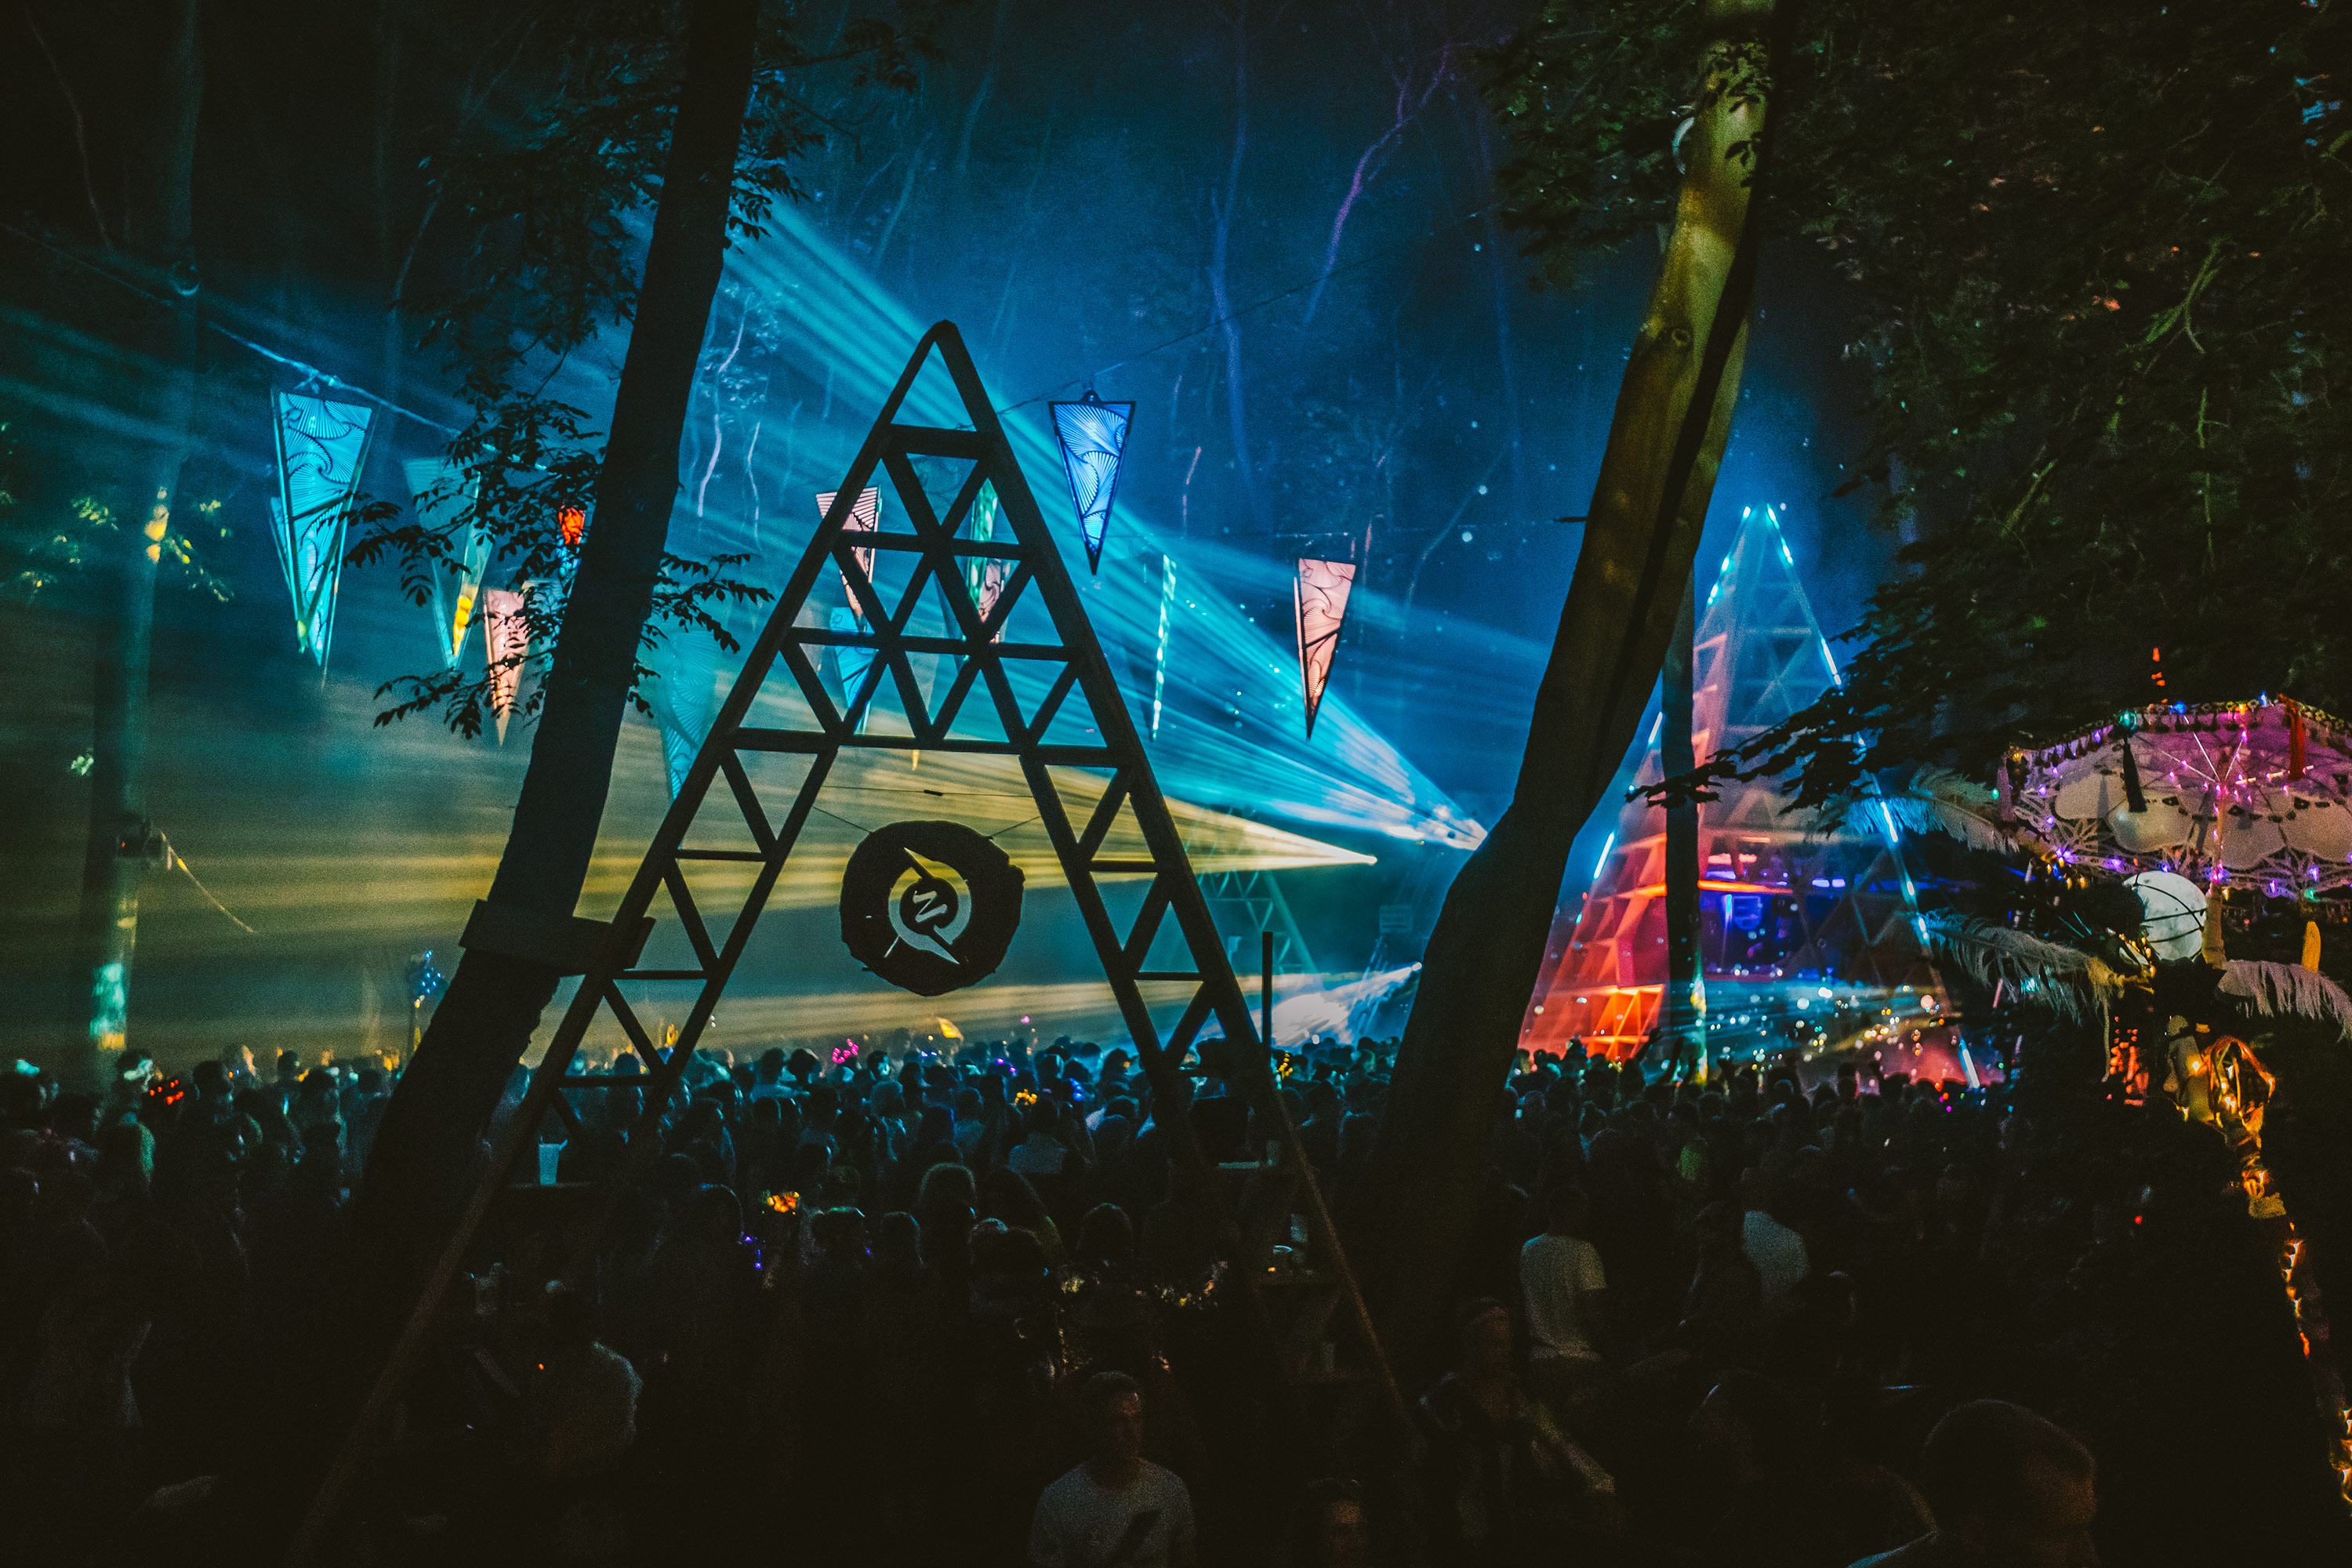 large crowd watching a music stage at night during Noisily Festival 2019